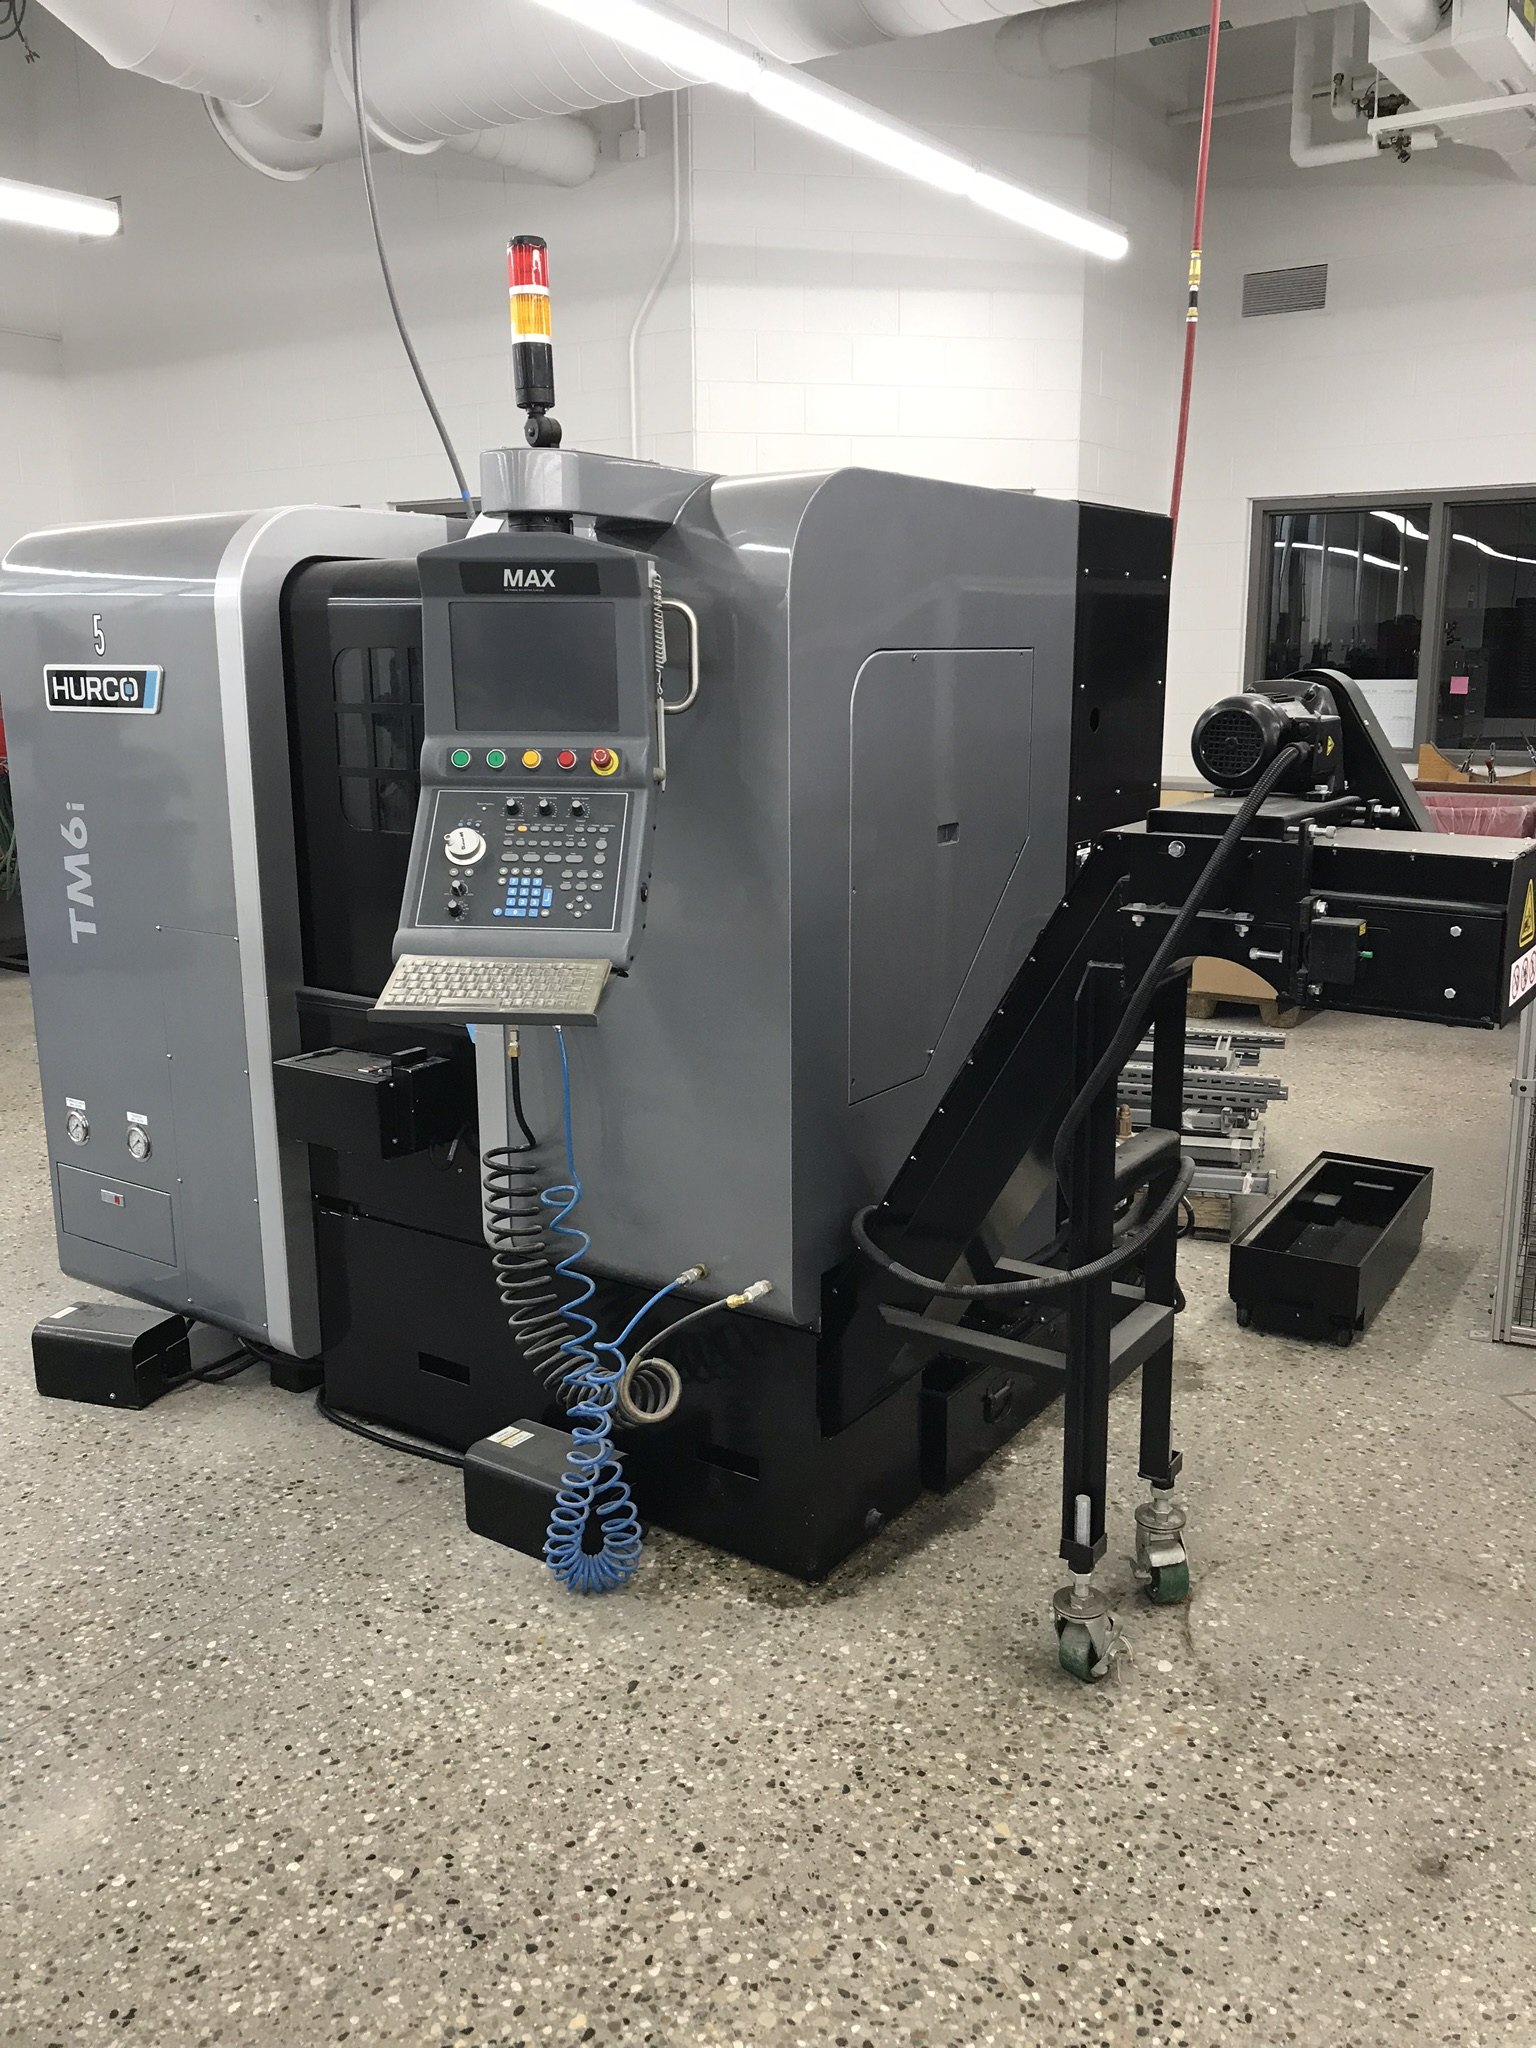 Hurco TM-6i CNC Lathe, Winmax Classic Package, Rigid Tap, Renishaw Presetter, Chip Conv, 400 Hours! - Image 2 of 13